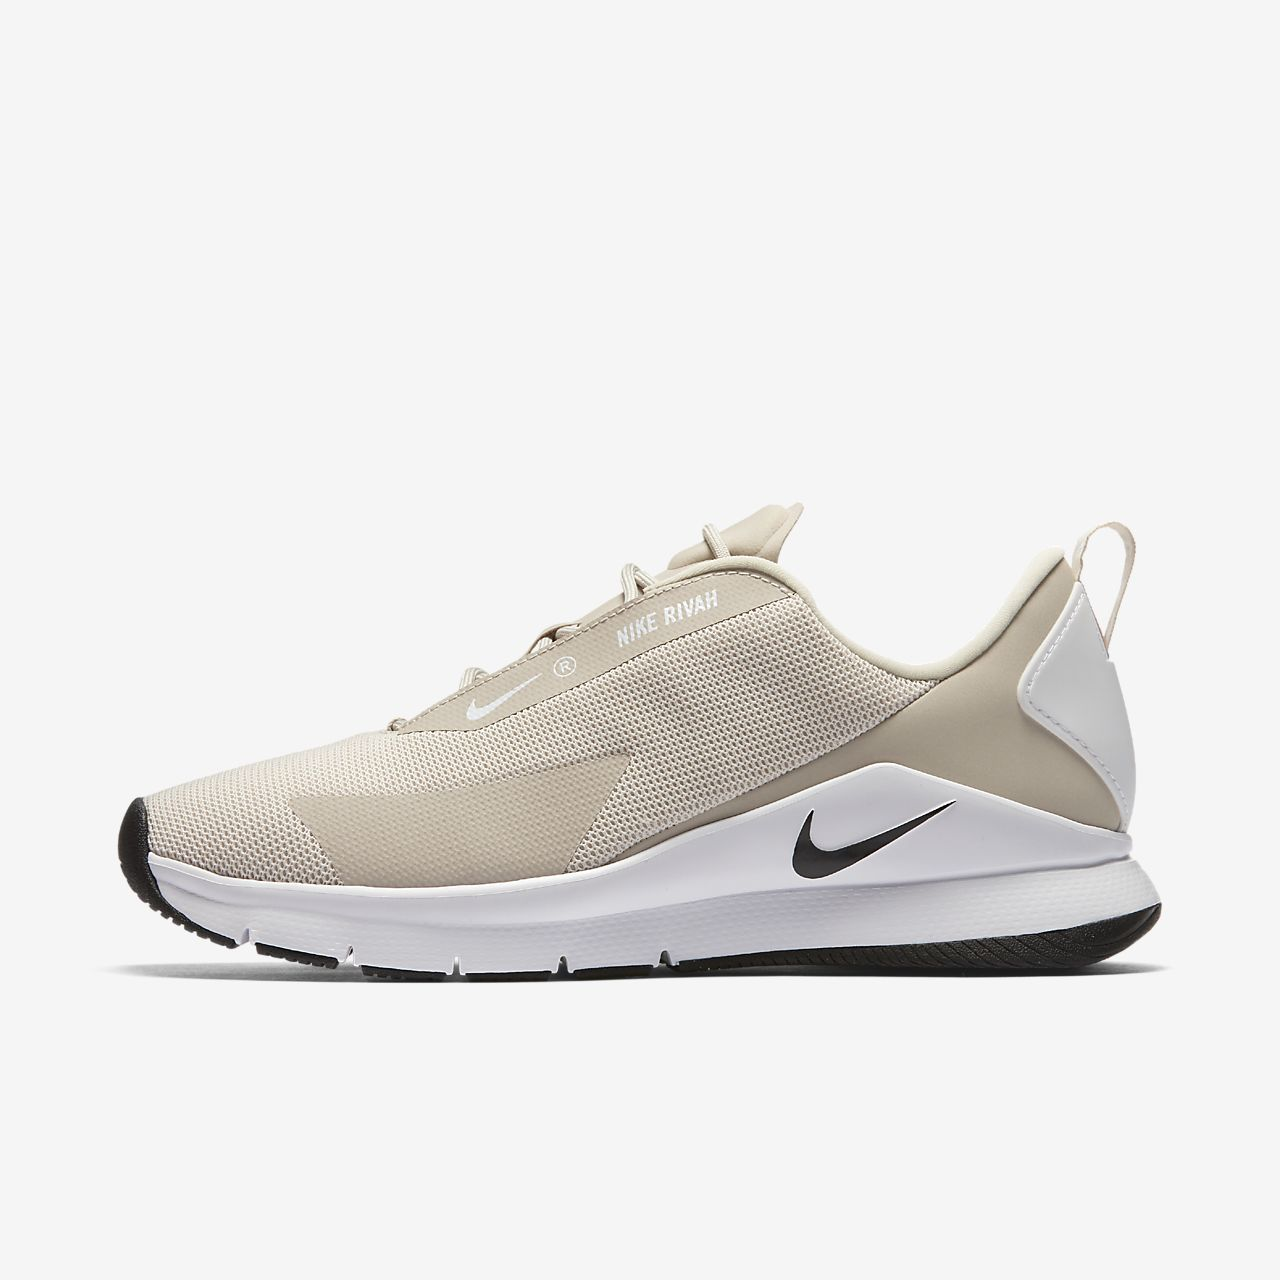 Nike Rivah Women's Shoe